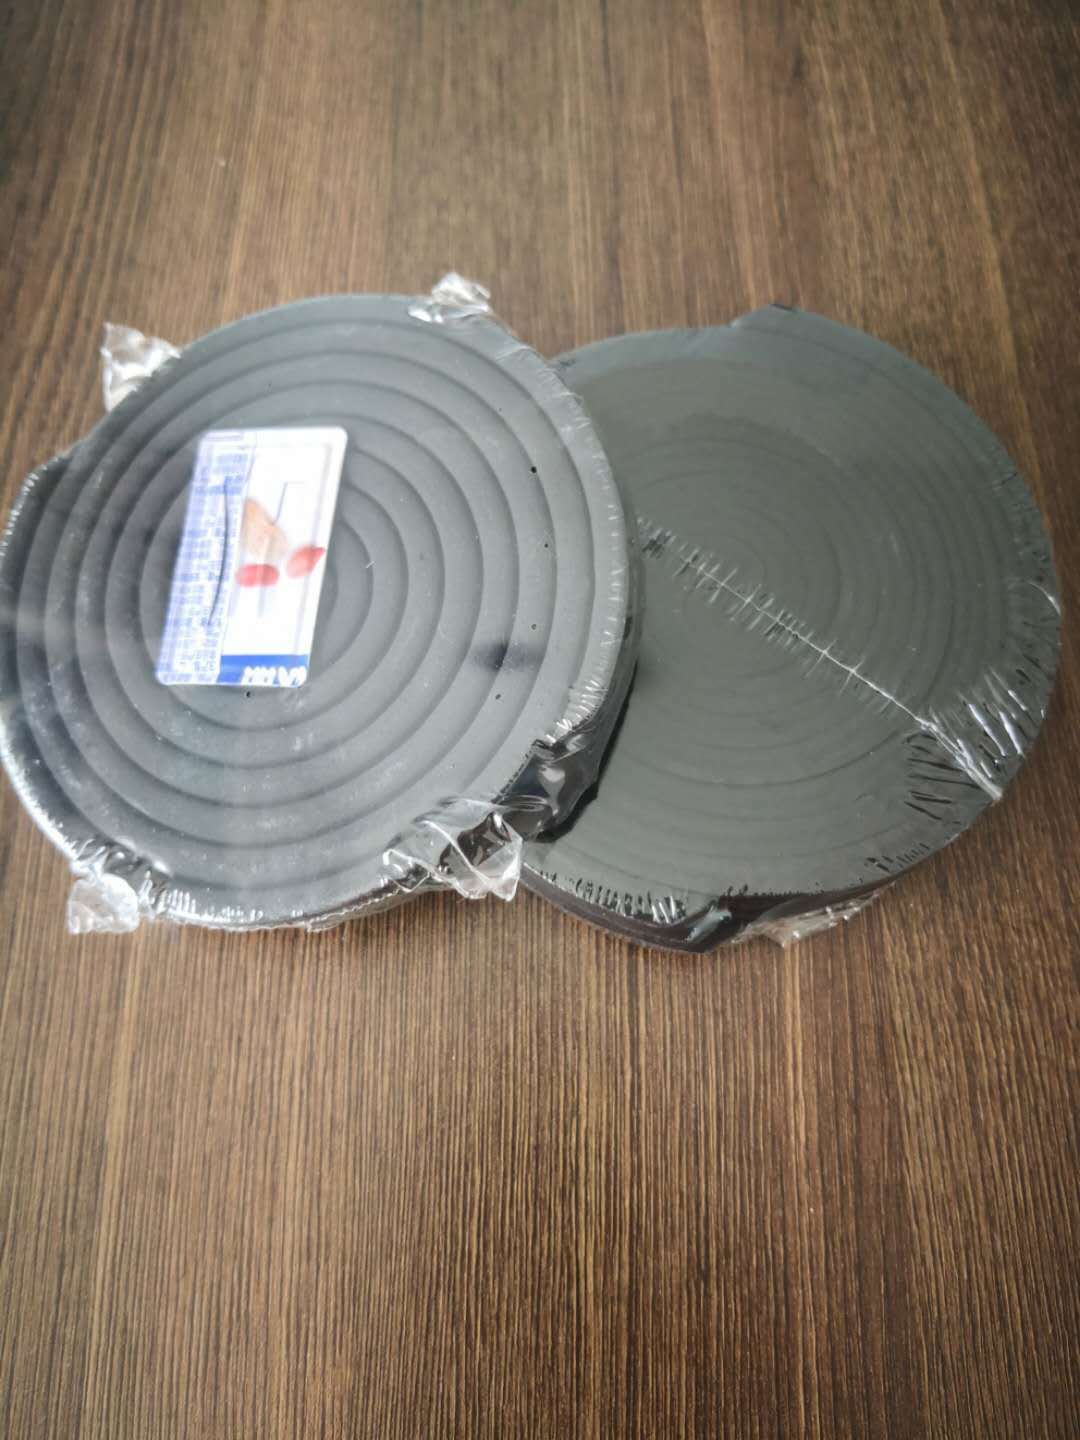 Home Use Organic Mosquito Control Product Mosquito Destroyer Coils